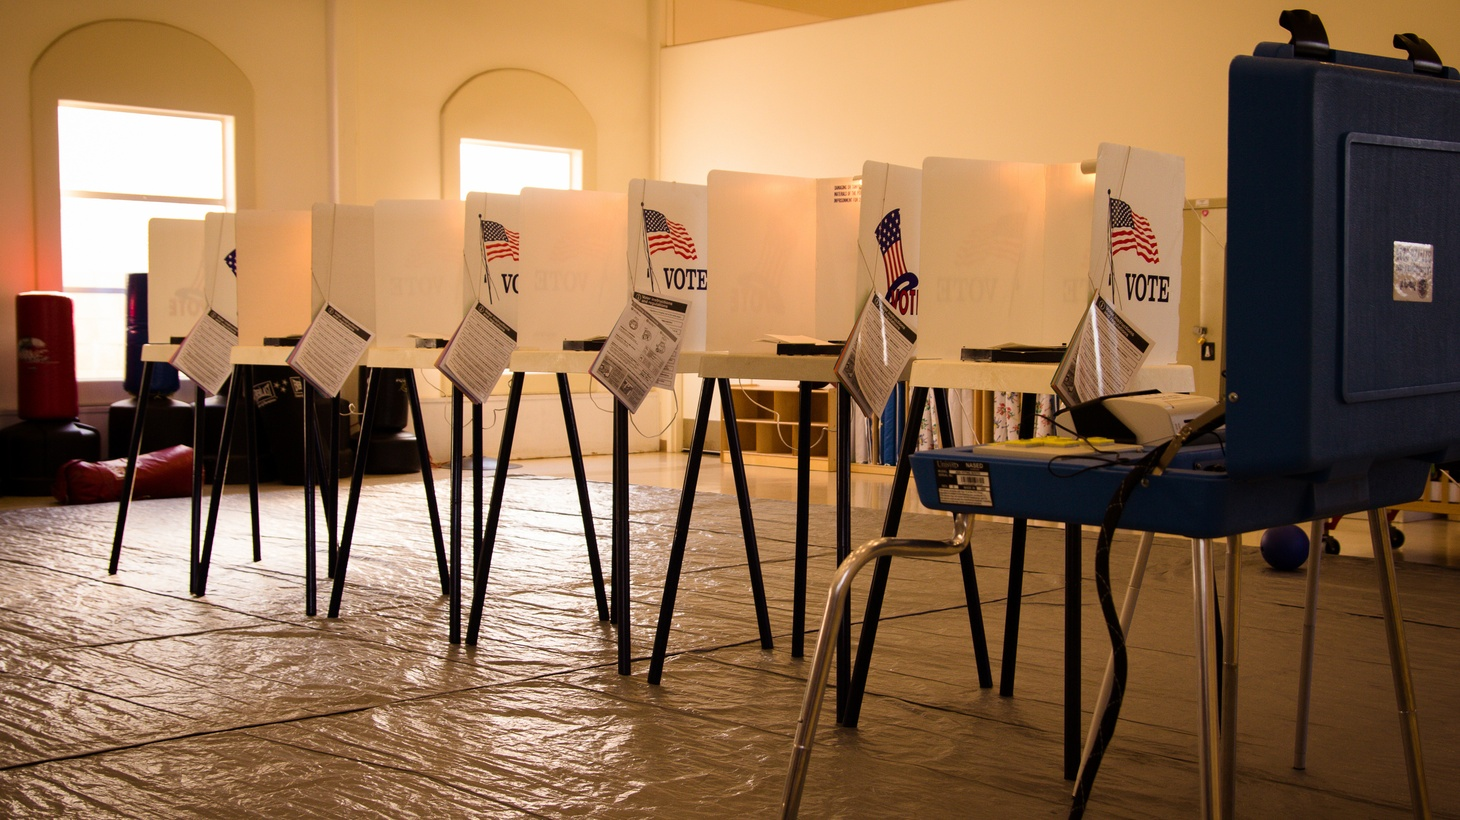 Groups supporting Trump say they plan to send poll watchers to polling places nationwide on election day. The groups say they want to prevent voter fraud, but opponents argue that what they're doing is voter intimidation.